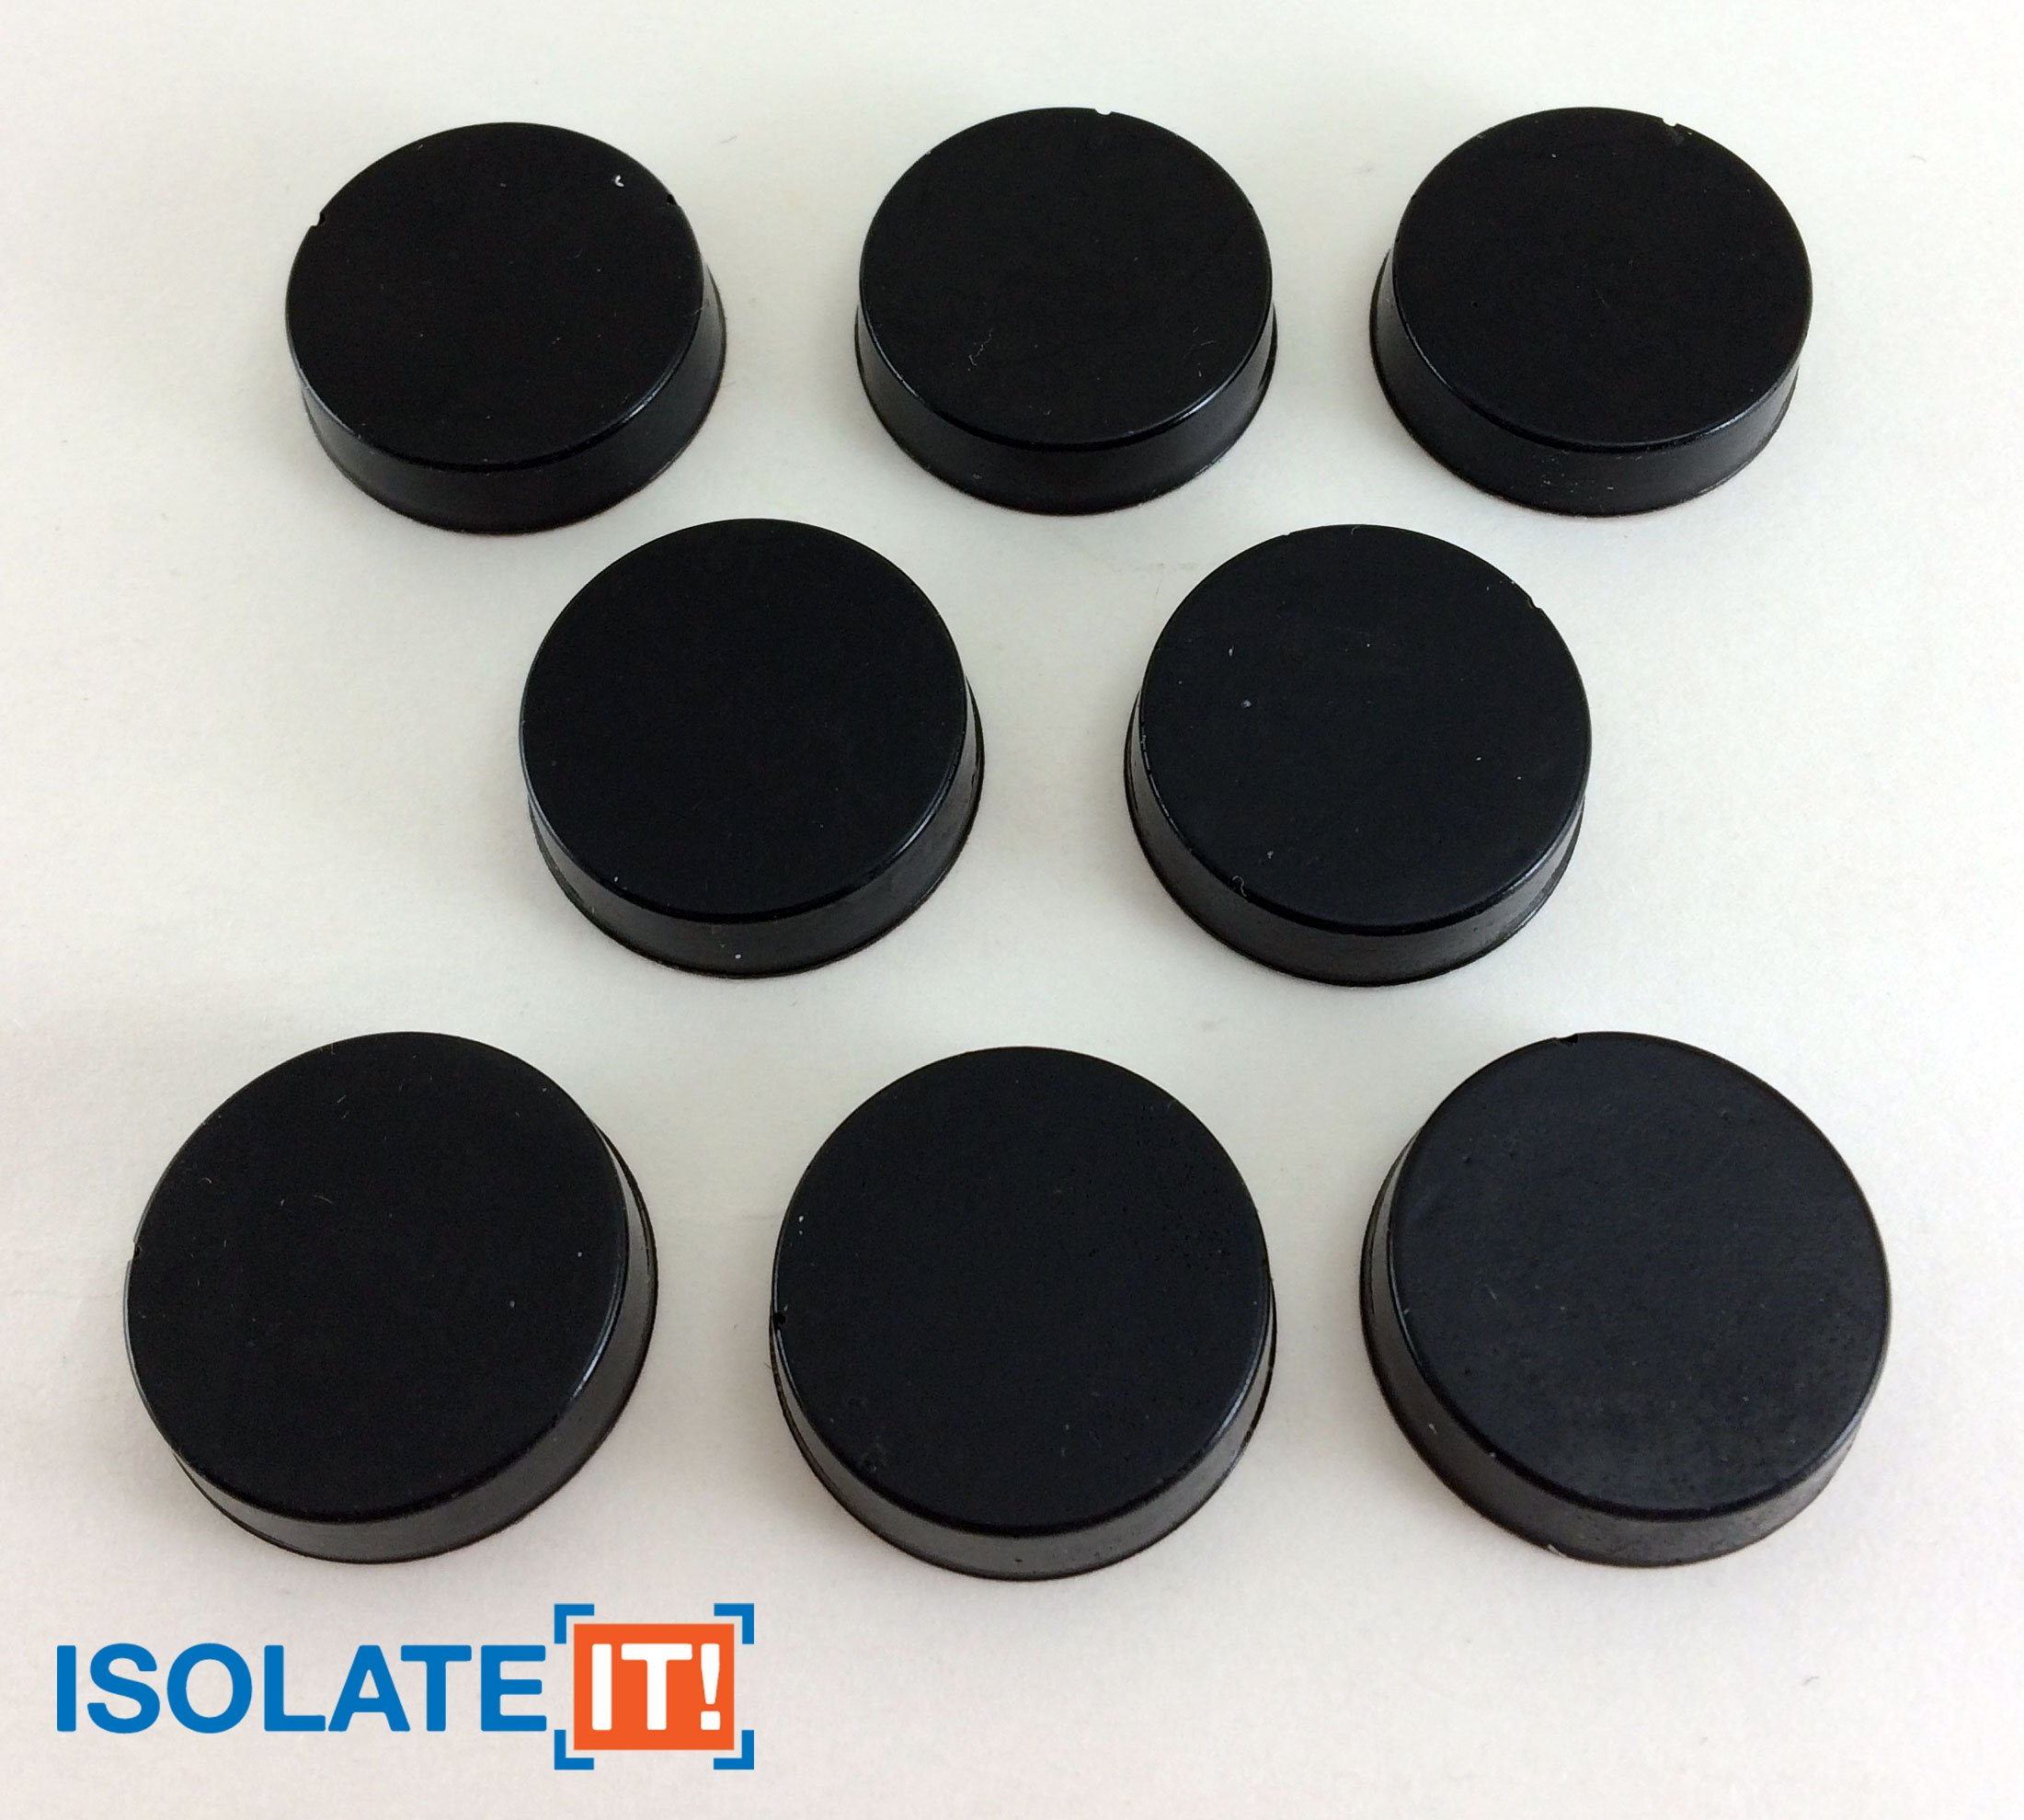 Isolate It: Sorbothane Vibration Isolation Circular Disc Pad 0.25'' Thick 1'' Dia. 30 Duro - 8 Pack